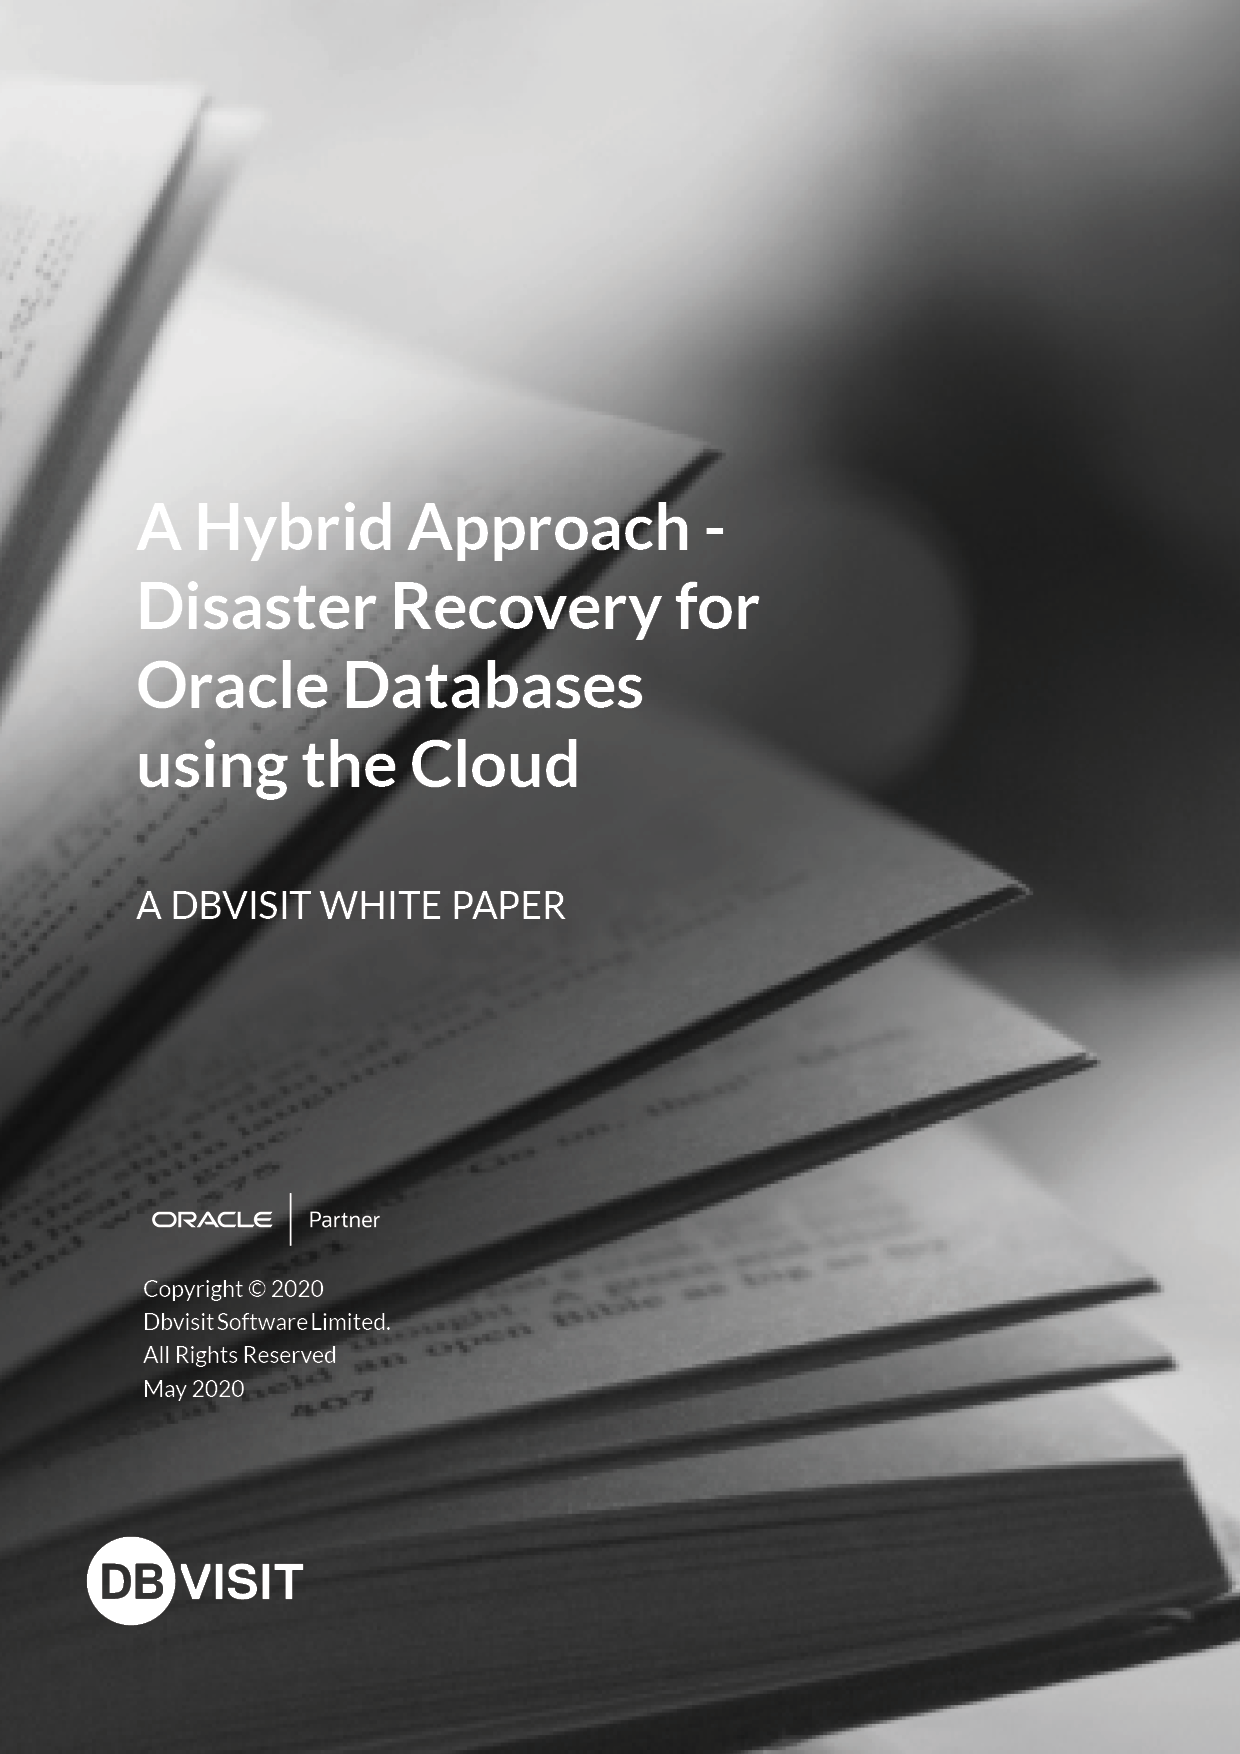 A Hybrid Approach - DR for Databases in the Cloud_May 2020